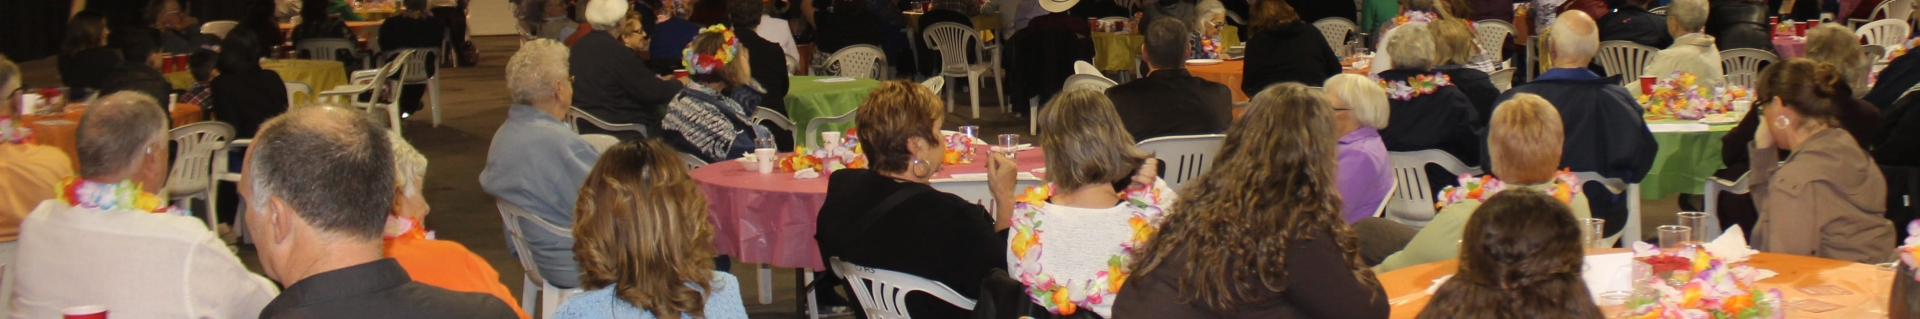 Group of older adults sitting with their backs to the camera